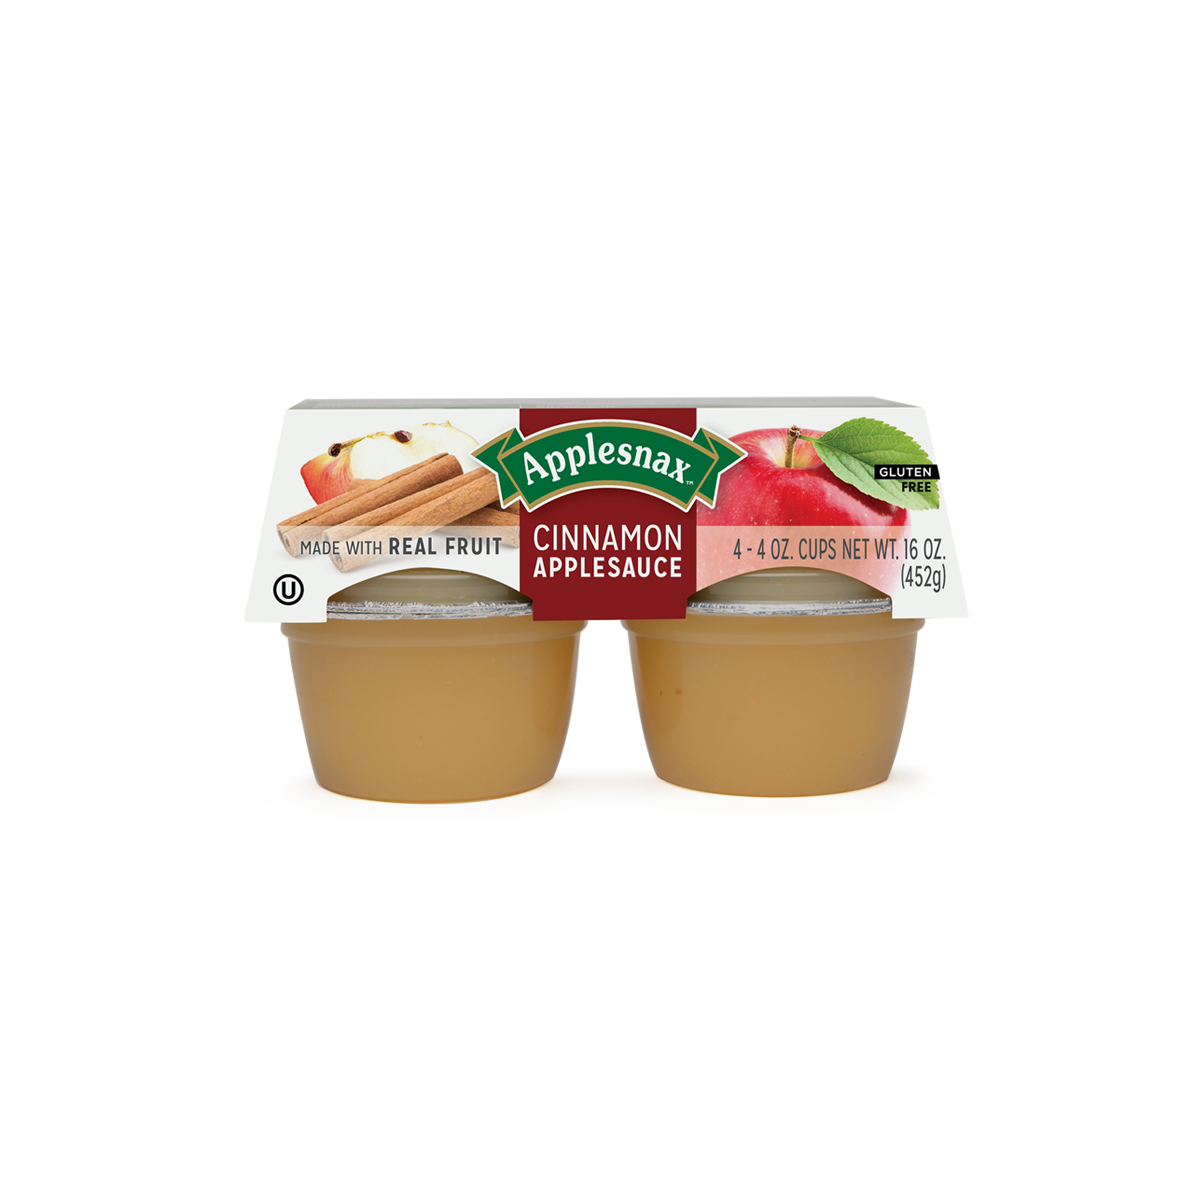 Applesnax Cinnamon Usa 4 Cups